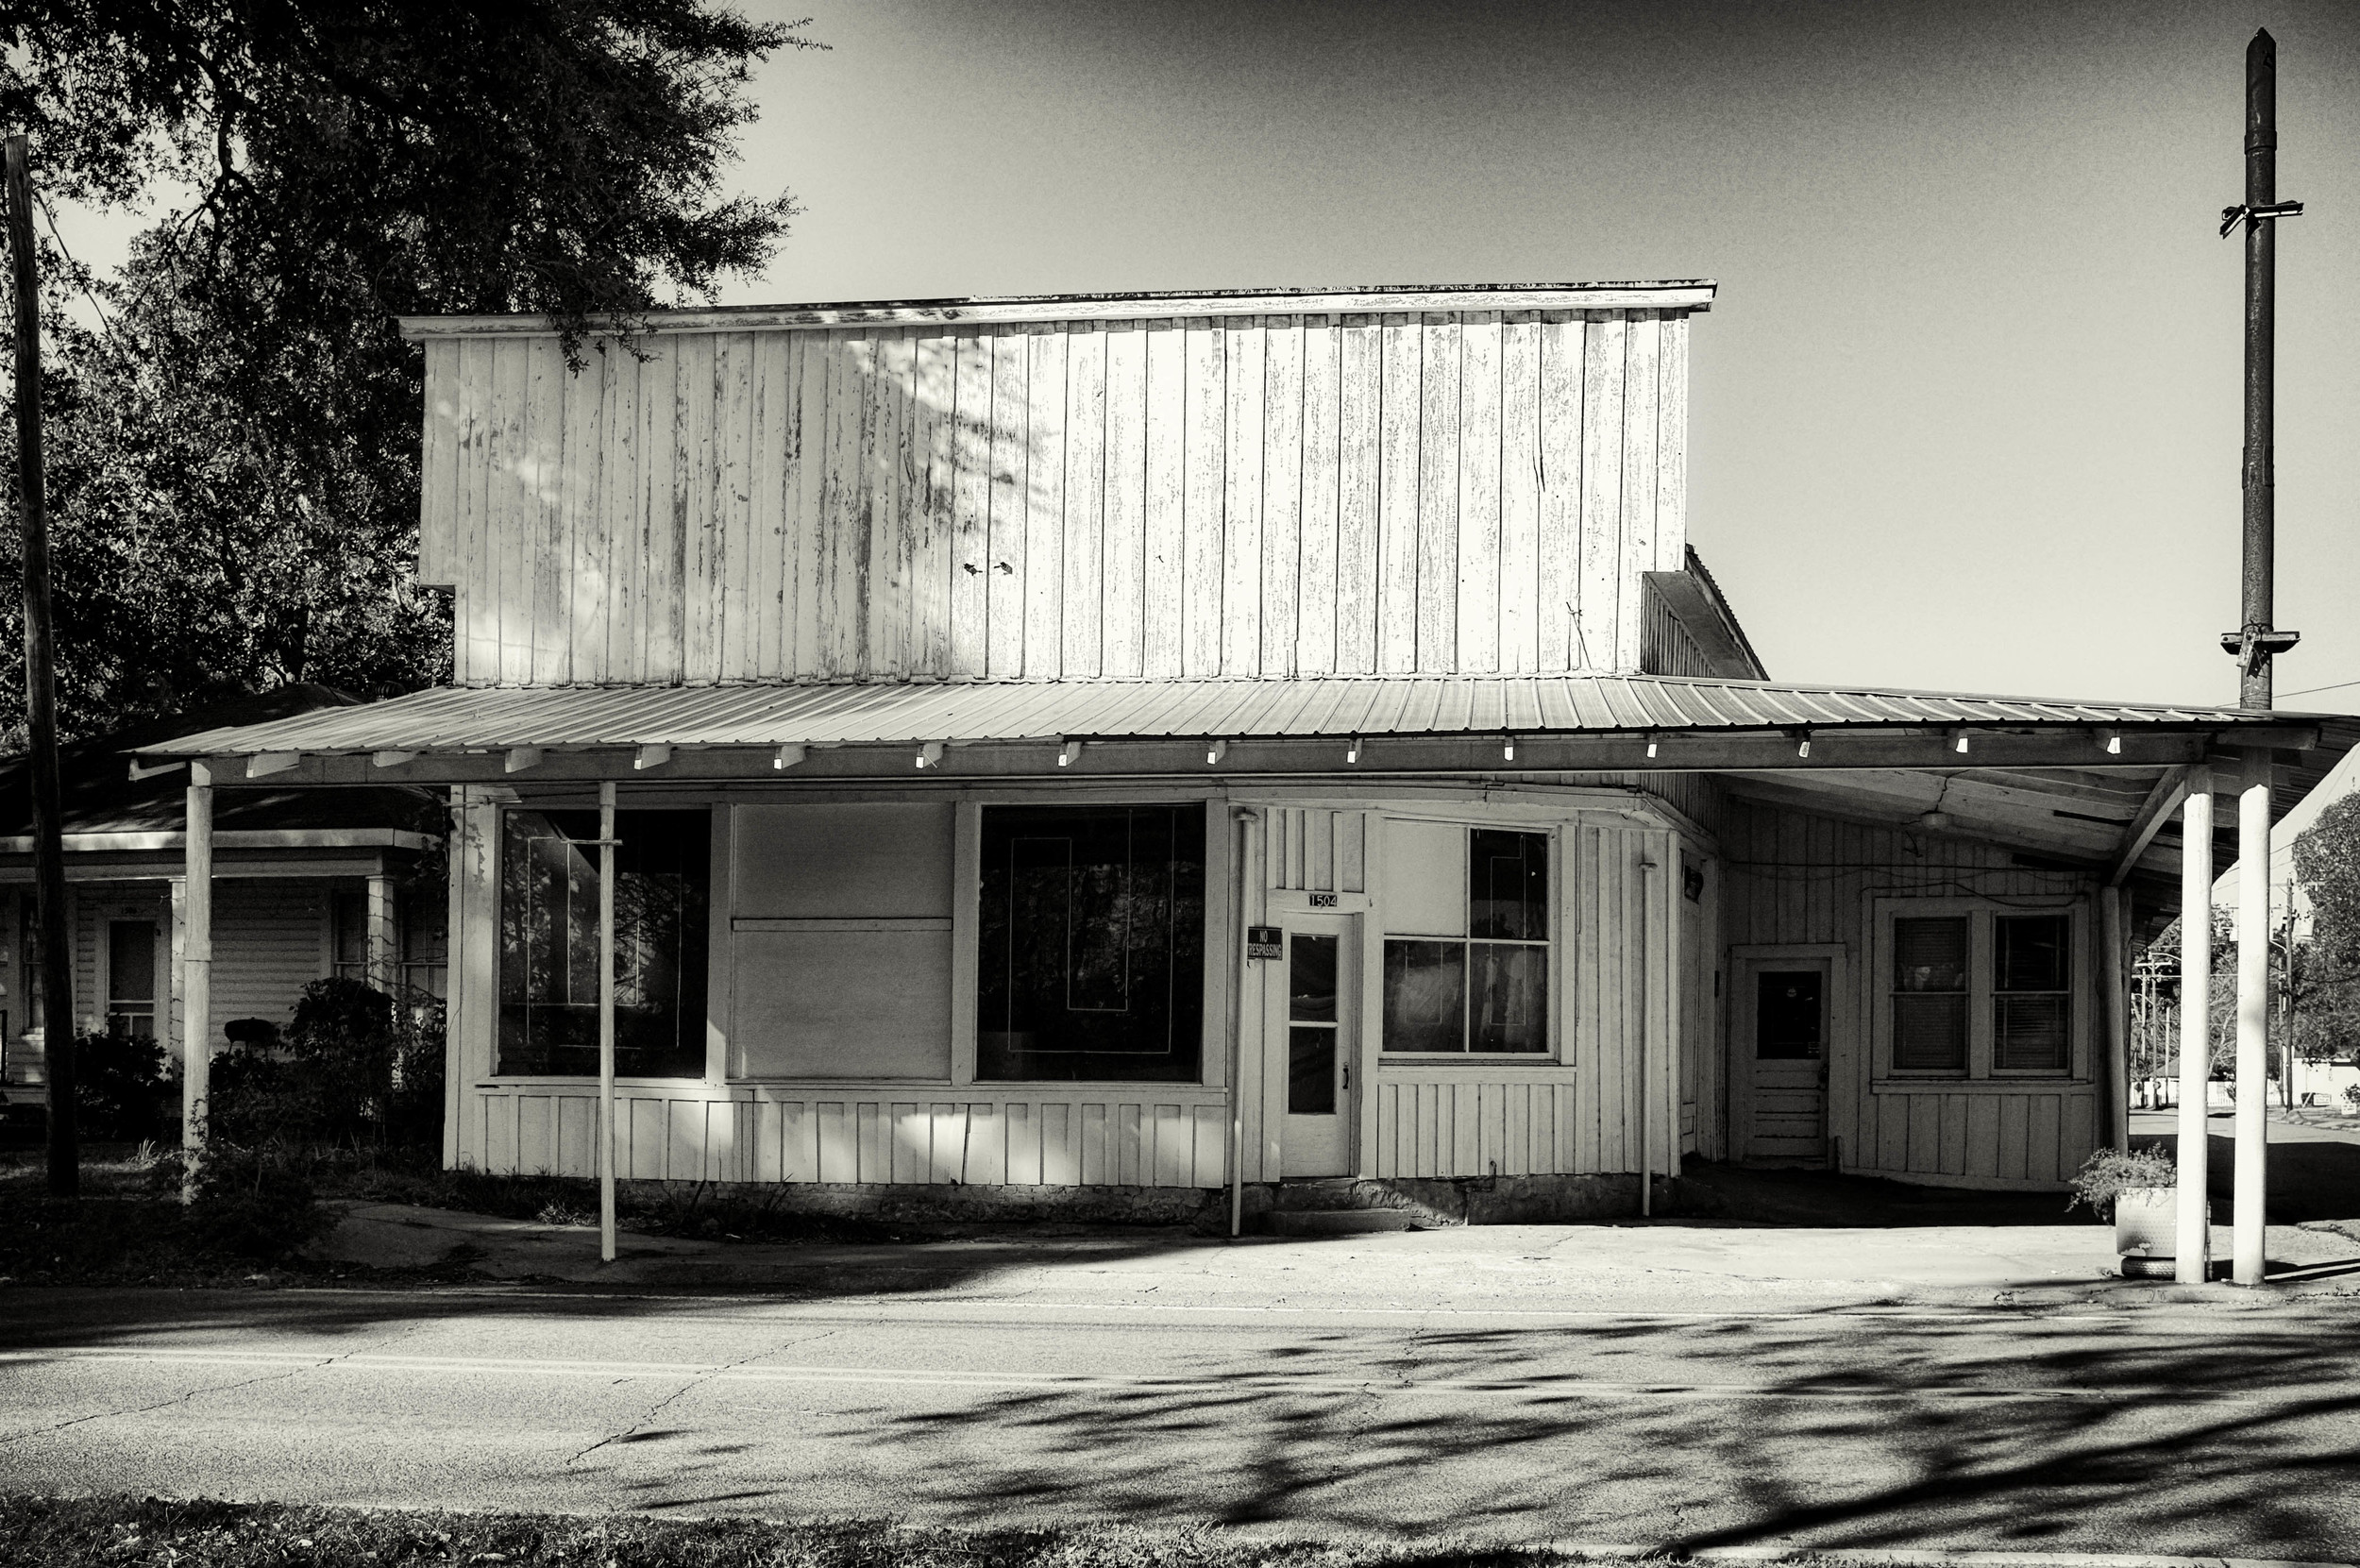 Roby's Motors, closed for business.